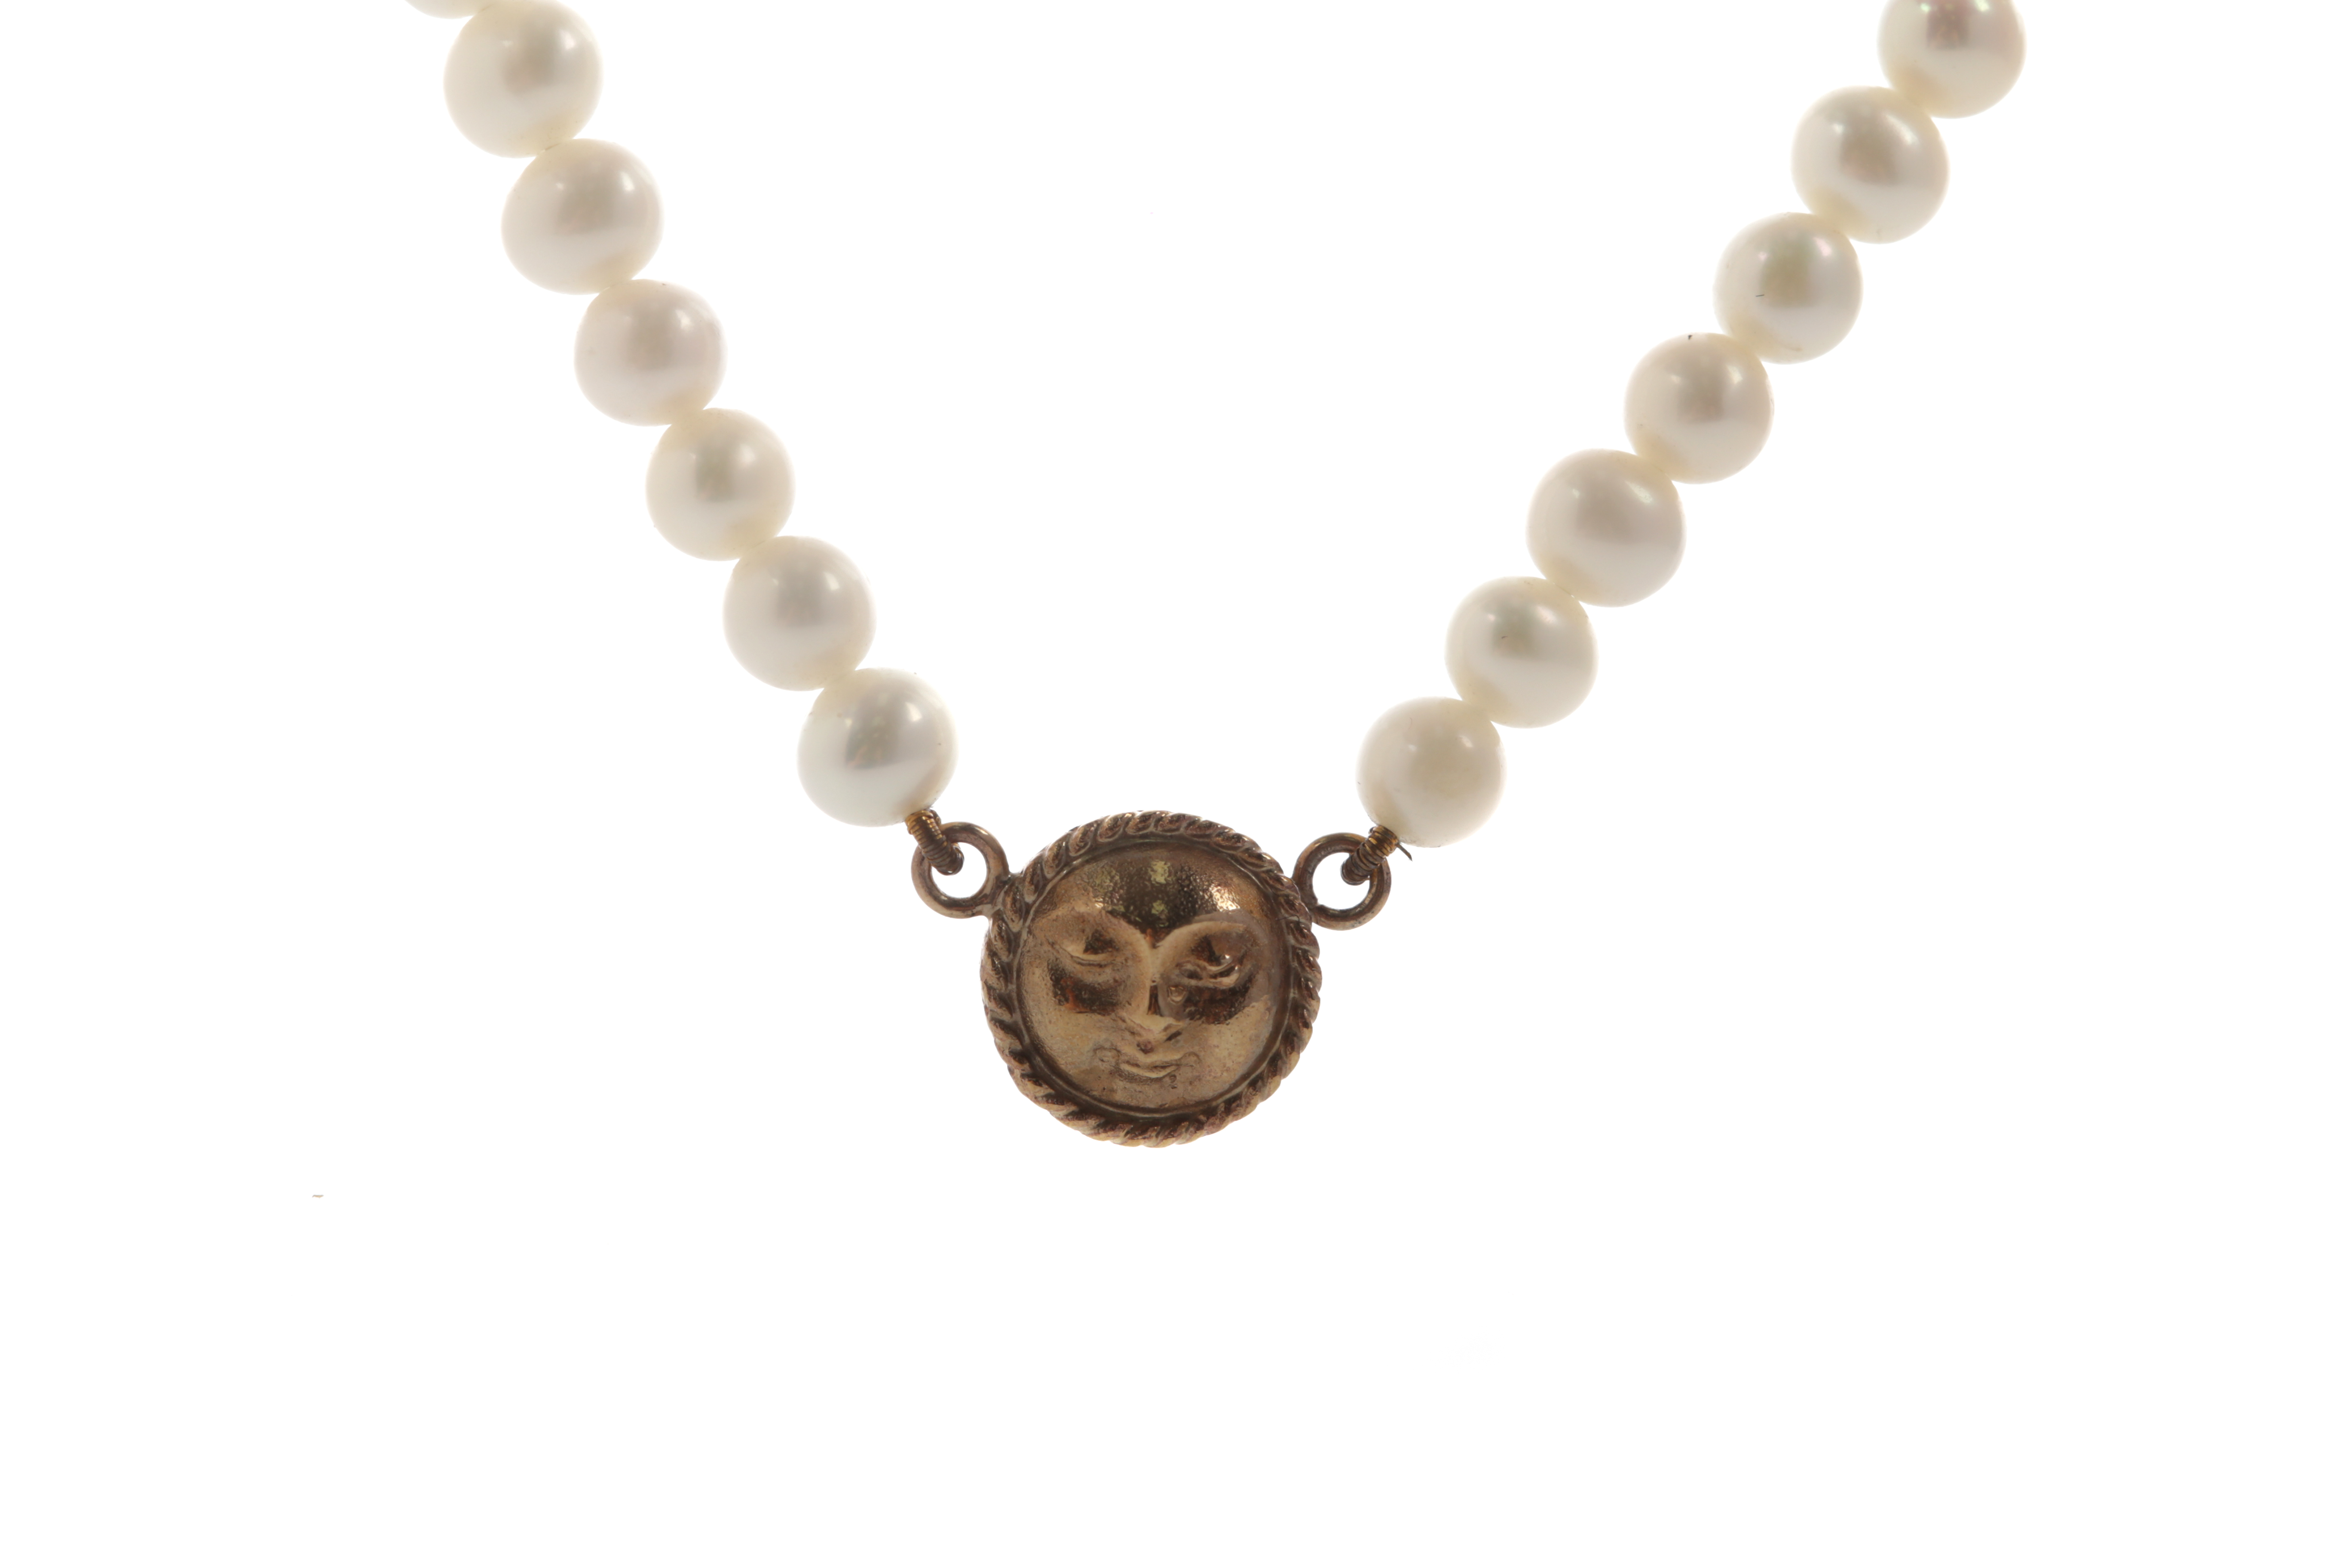 A FAUX PEARL NECKLACE WITH GOLD MOON CHARM - Image 2 of 2